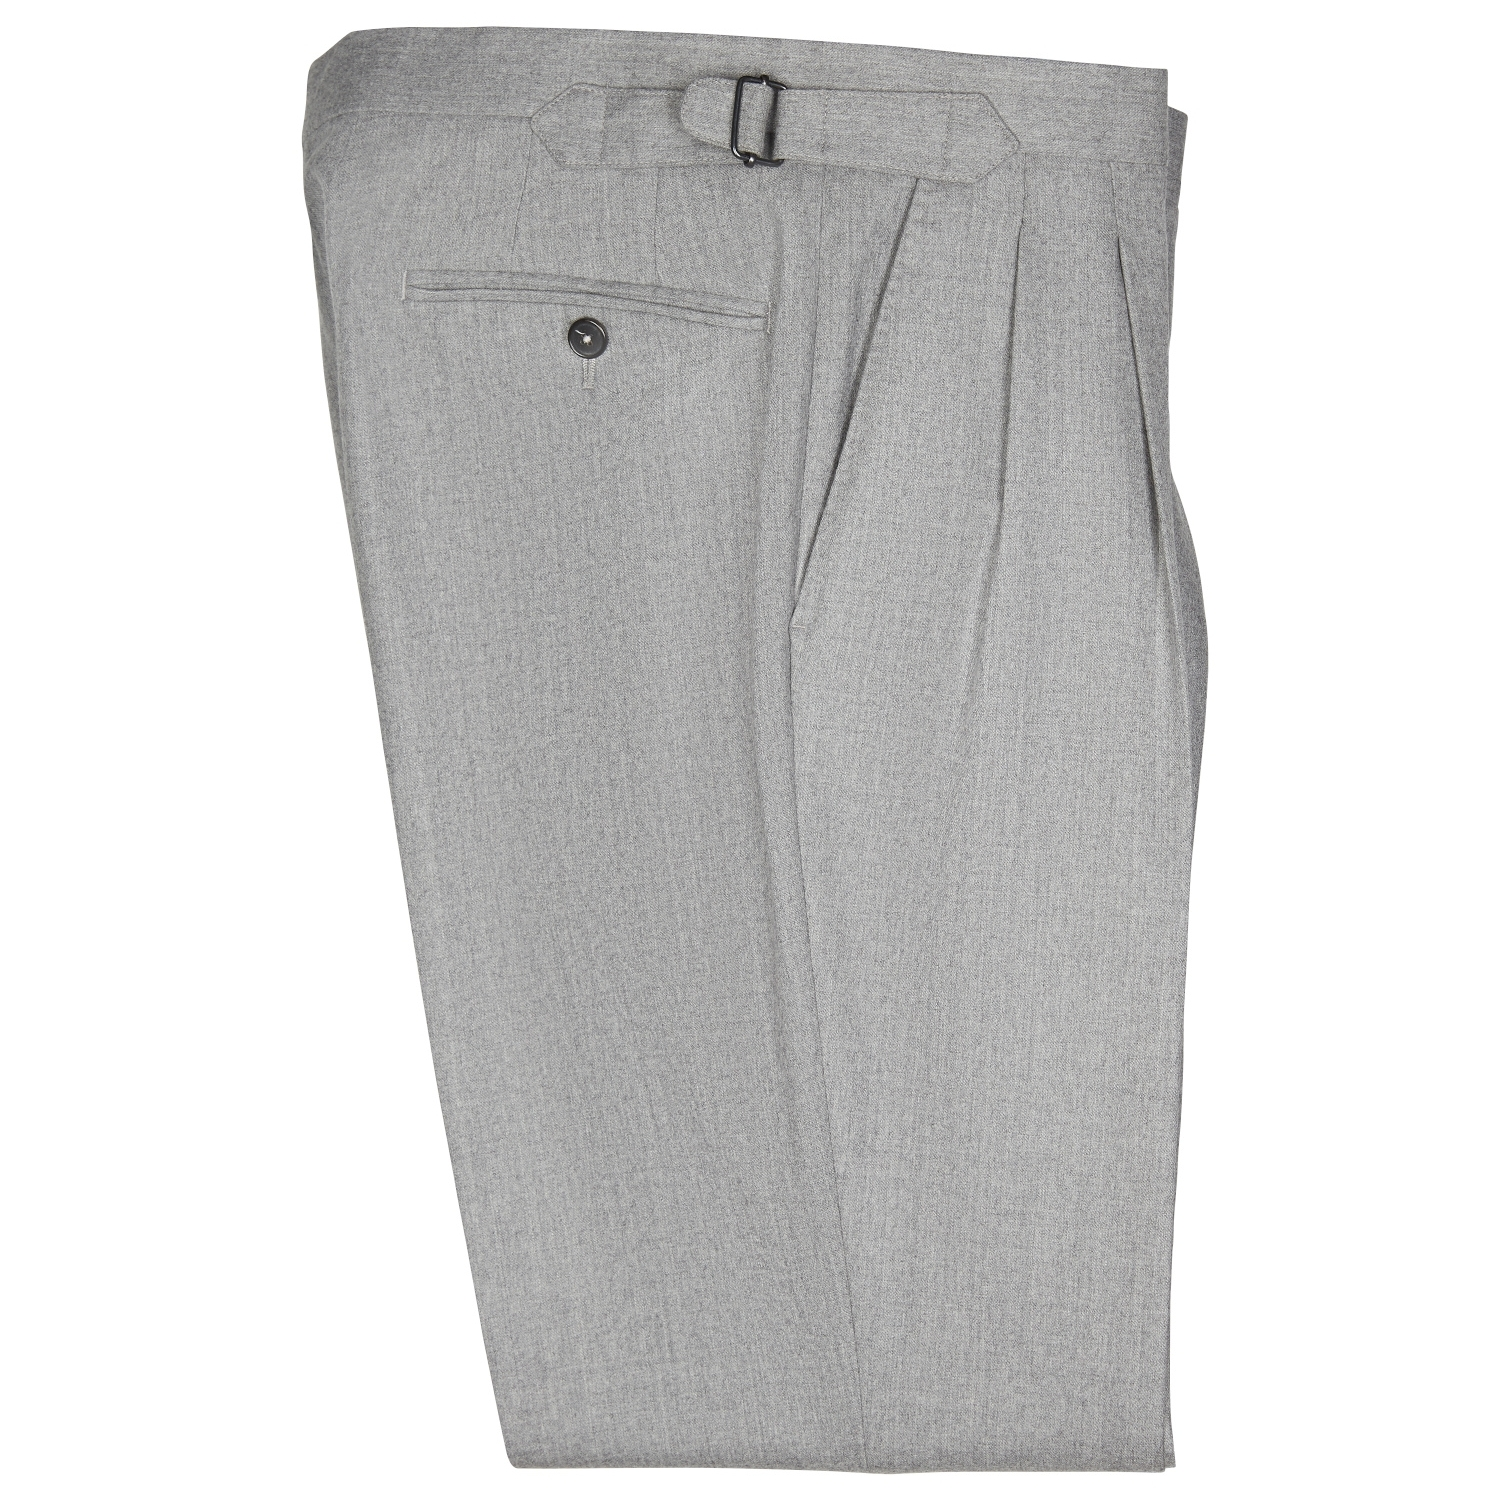 SSM-TR4 – Light grey double reverse pleats with side-adjusters - 100% wool  mid-high waisted flannel trousers @VBC fabric.